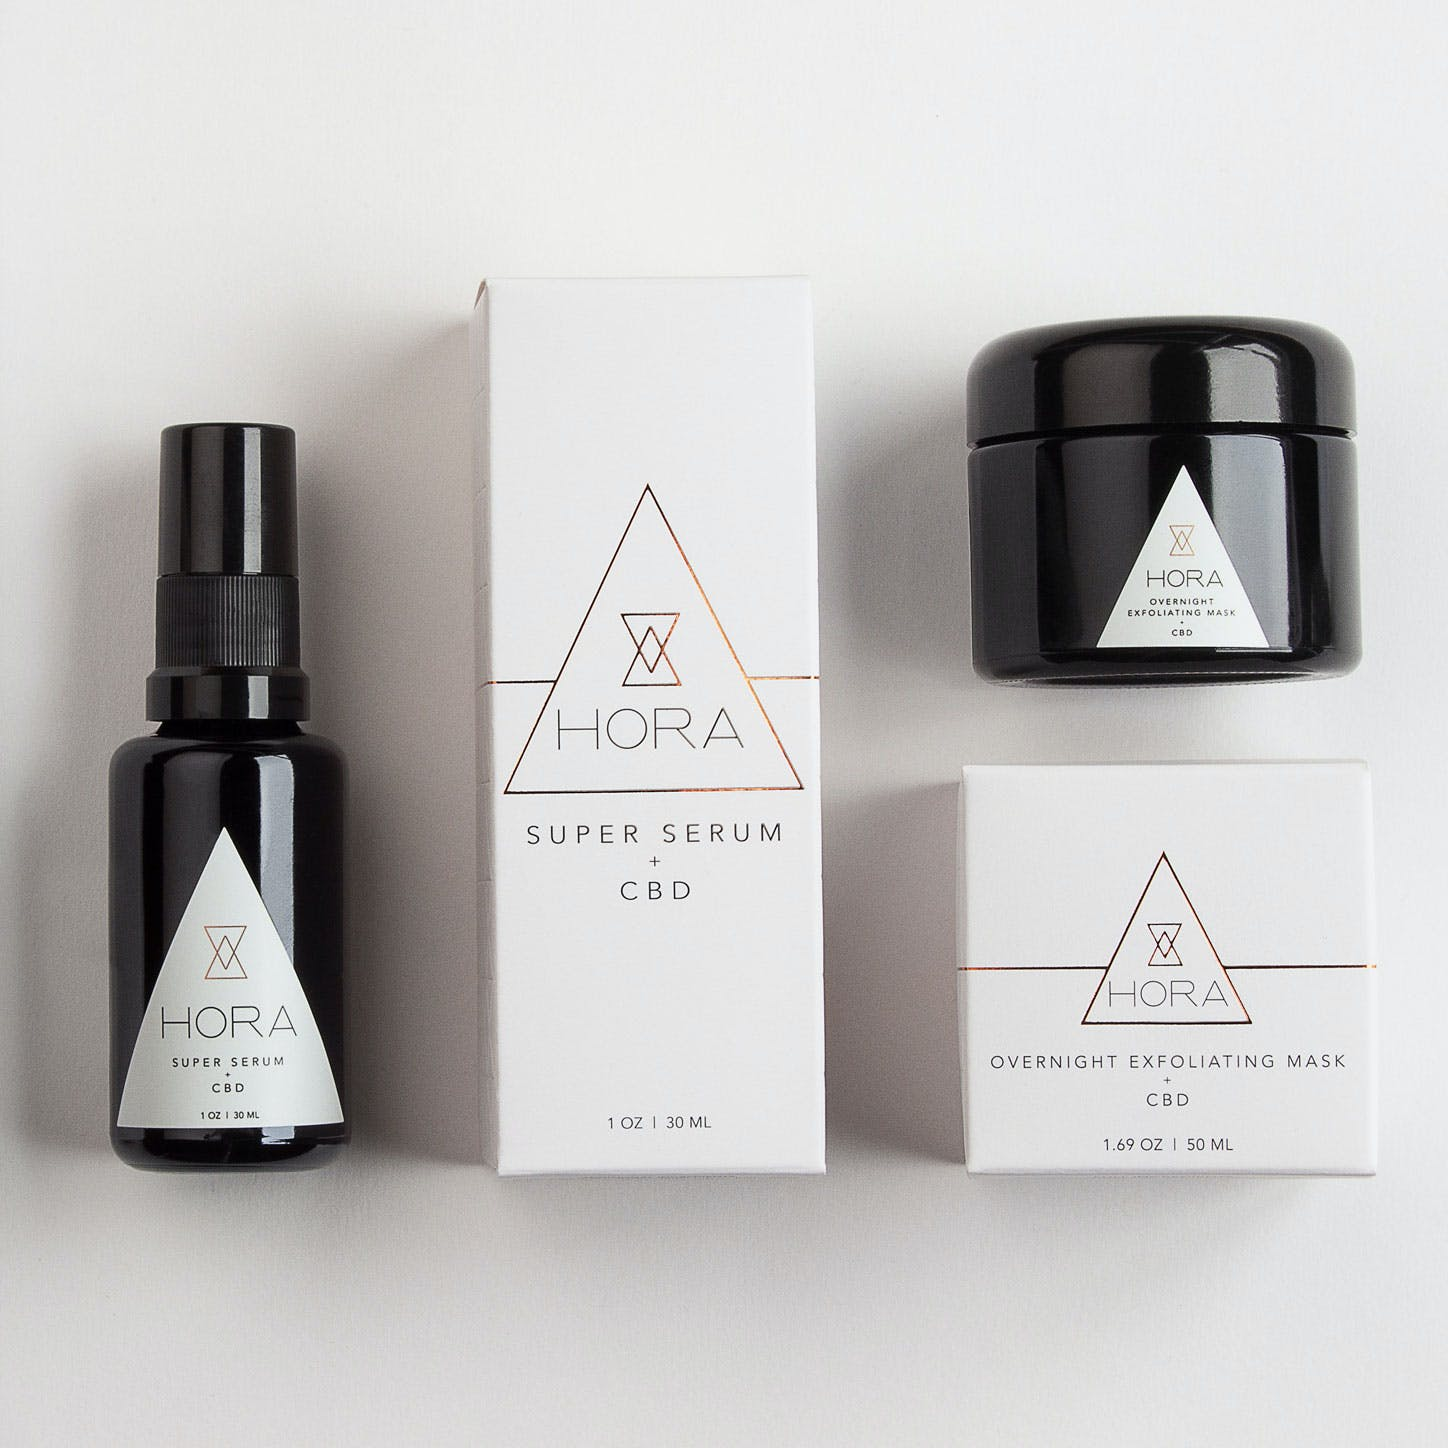 3 CBD Infused Hora Skincare Feels Incredible and Clears Up Skin CBD Infused Hora Skincare Feels Incredible and Clears Up Skin